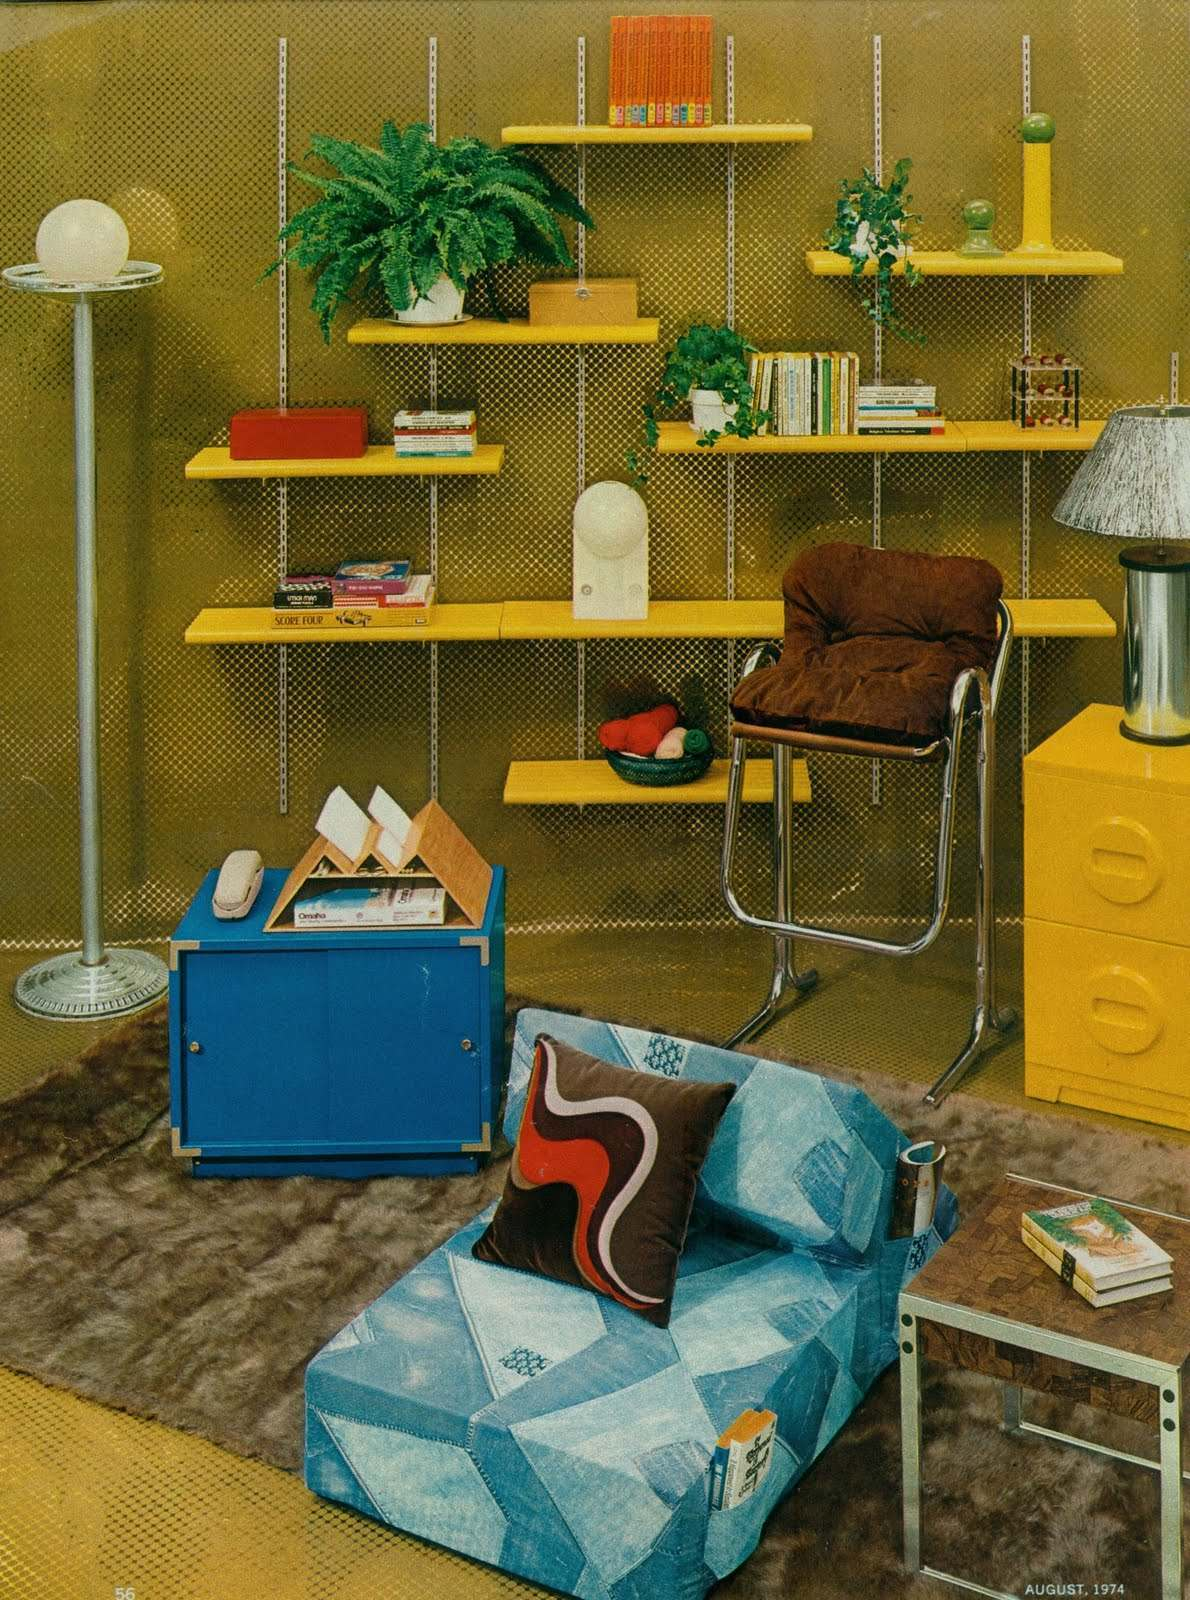 Groovy interiors 1965 and 1974 home d cor flashbak - Interior design and decoration ...